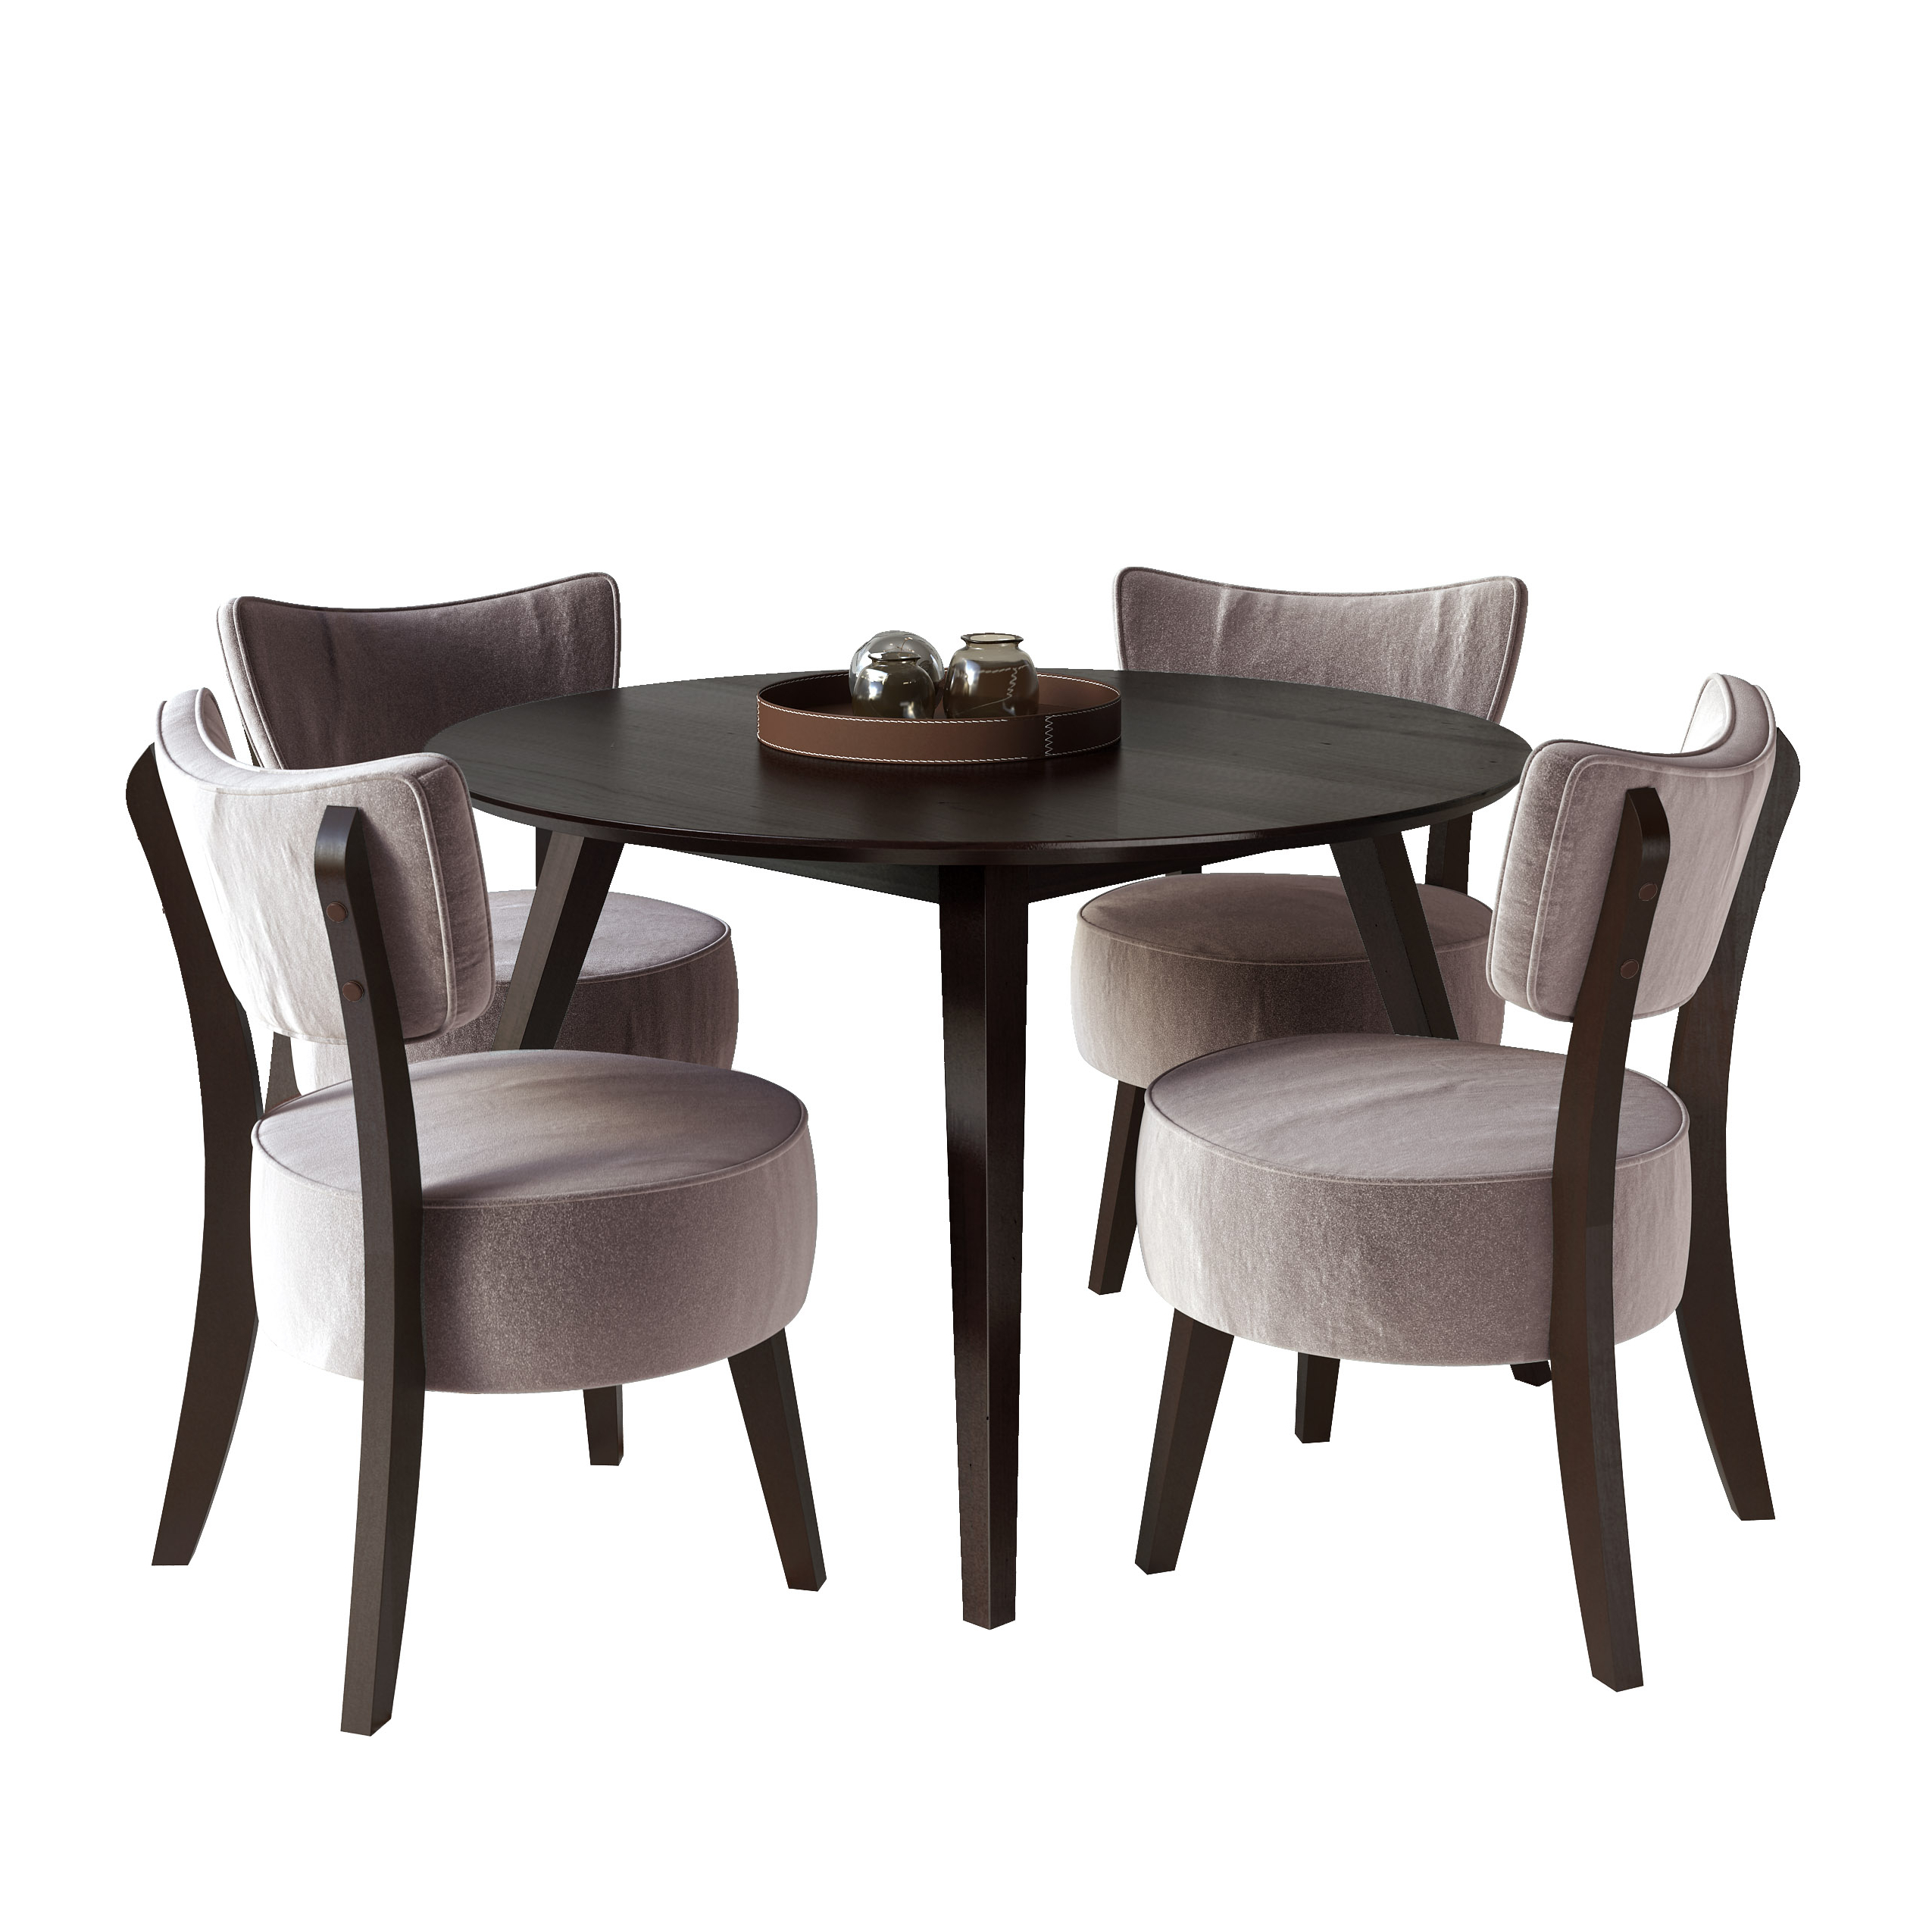 Corliving Atwood 42 In X 42 In Cappuccino Stained Square Dining Table In Popular Atwood Transitional Rectangular Dining Tables (View 24 of 25)